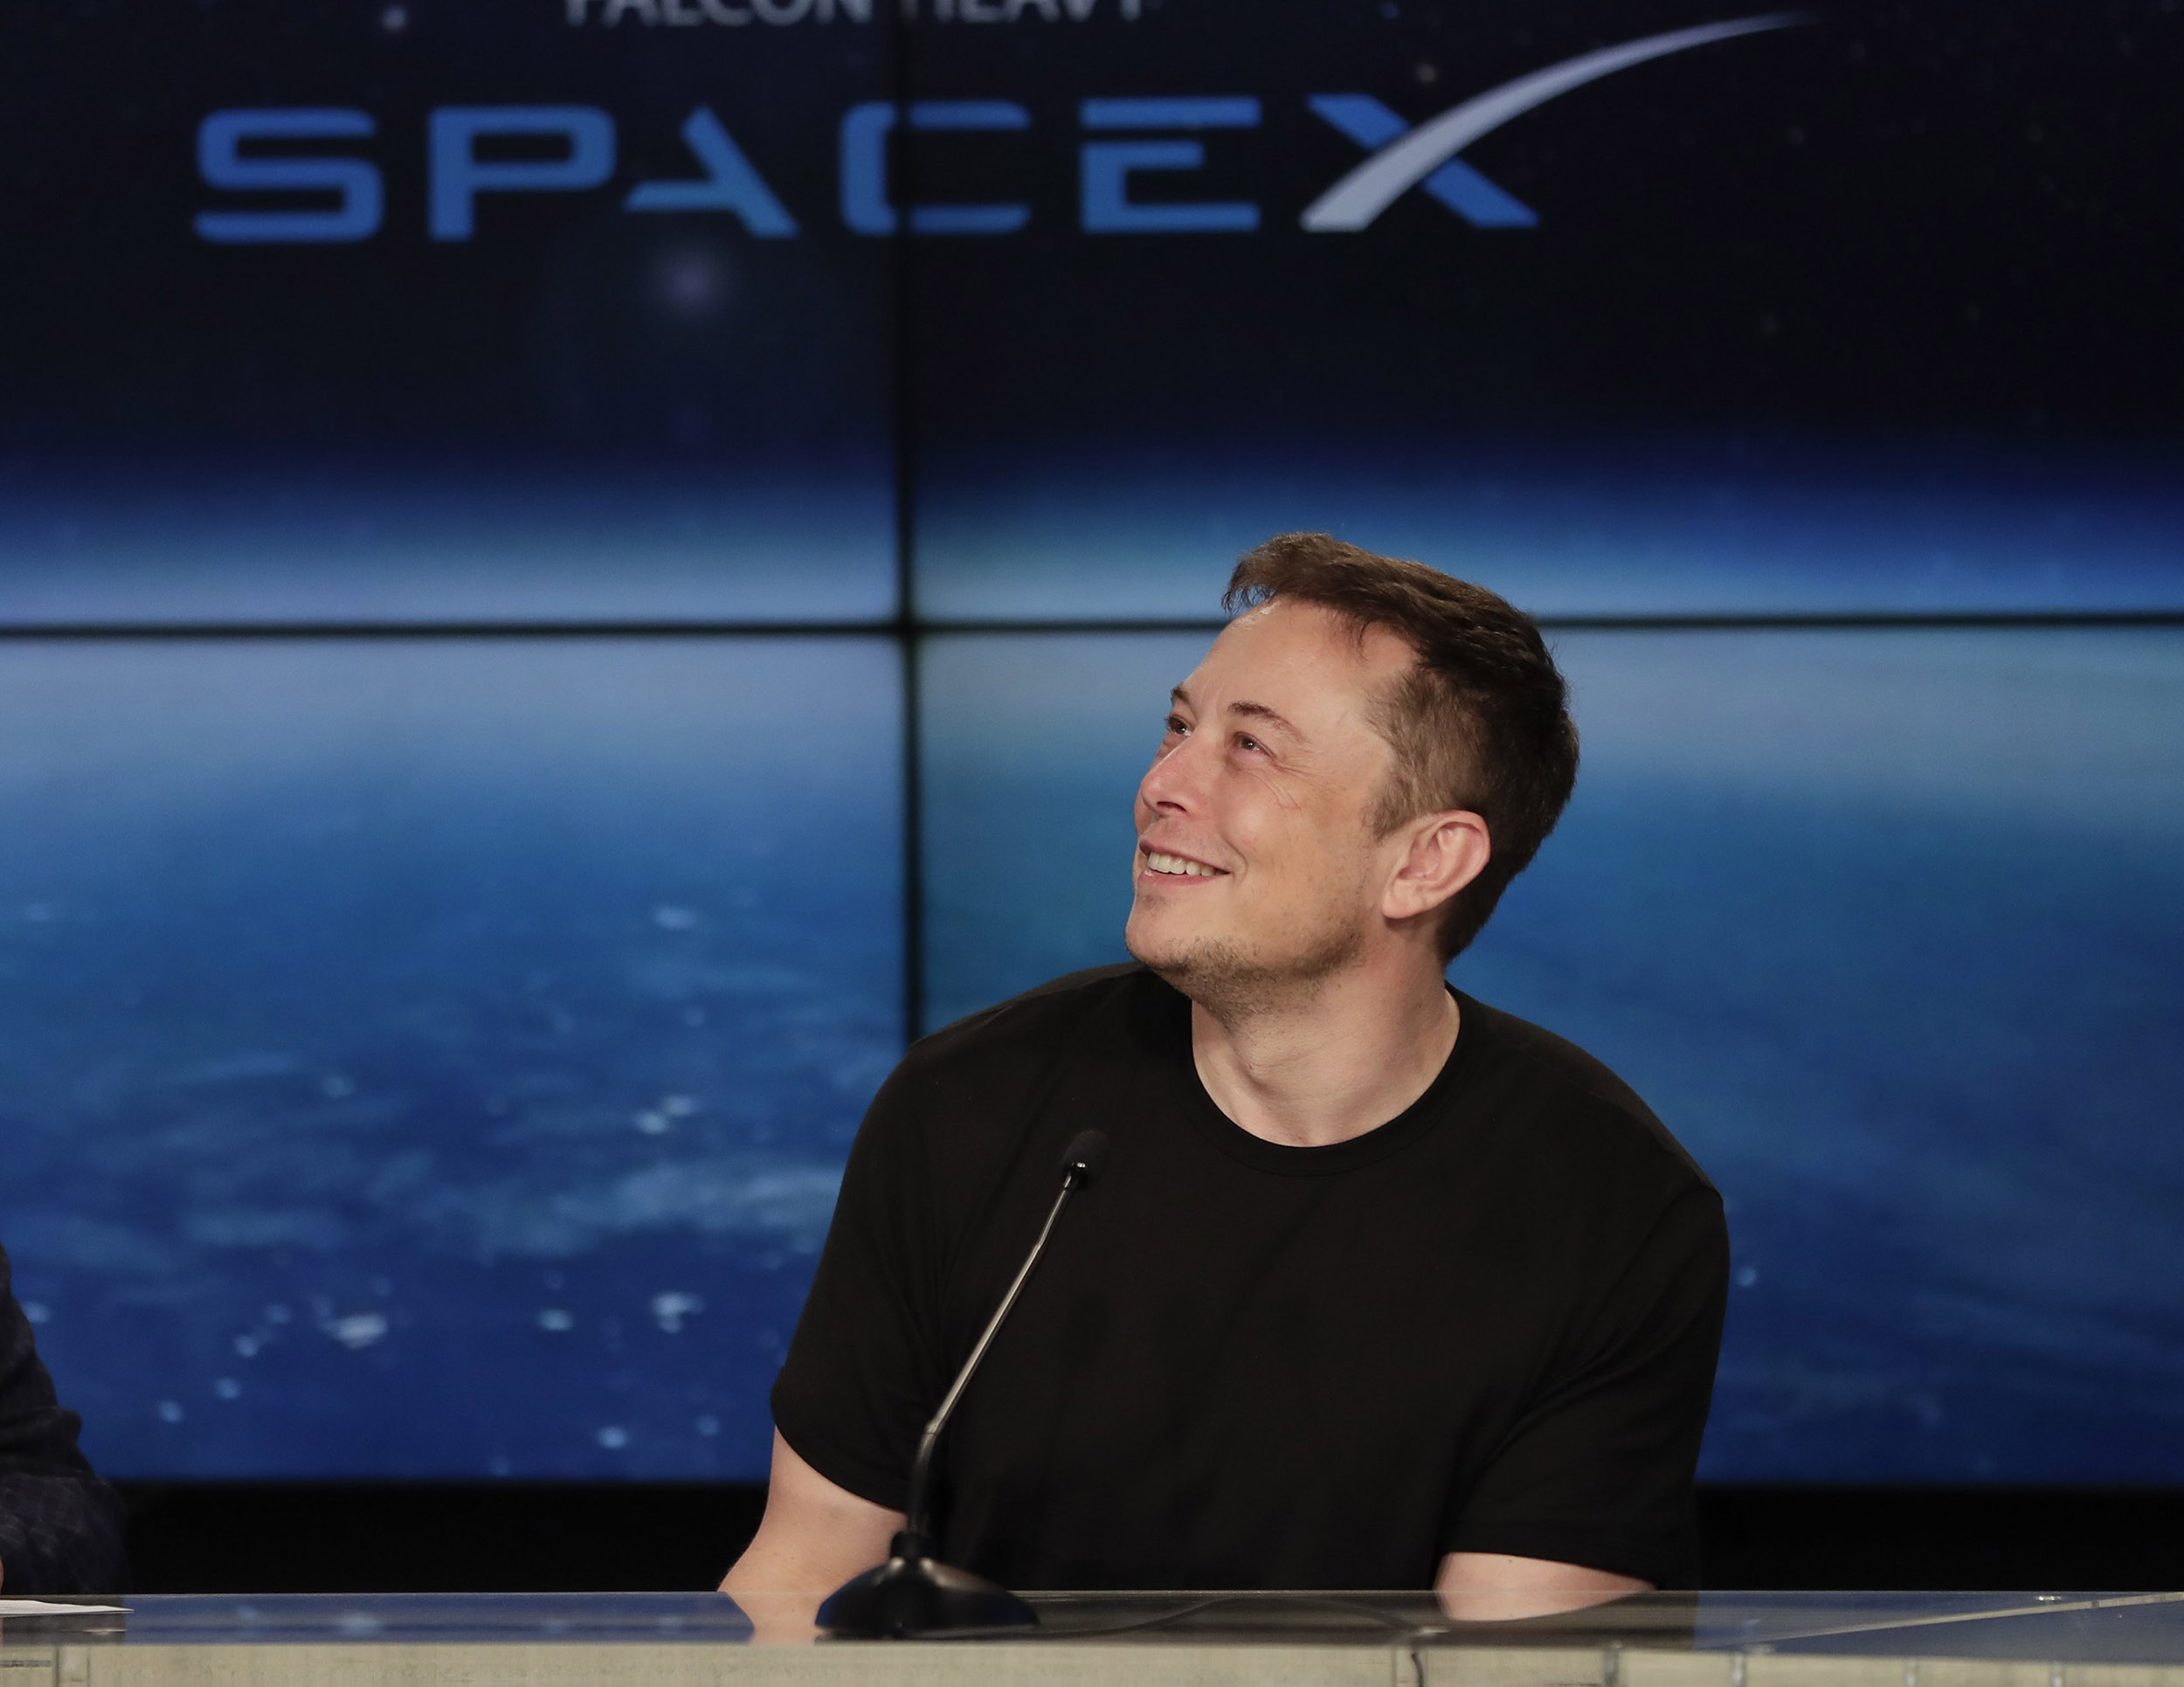 Watch Spacex Ceo Elon Musk Reveal Identity Of Space Tourist Who Will Fly Around The Moon